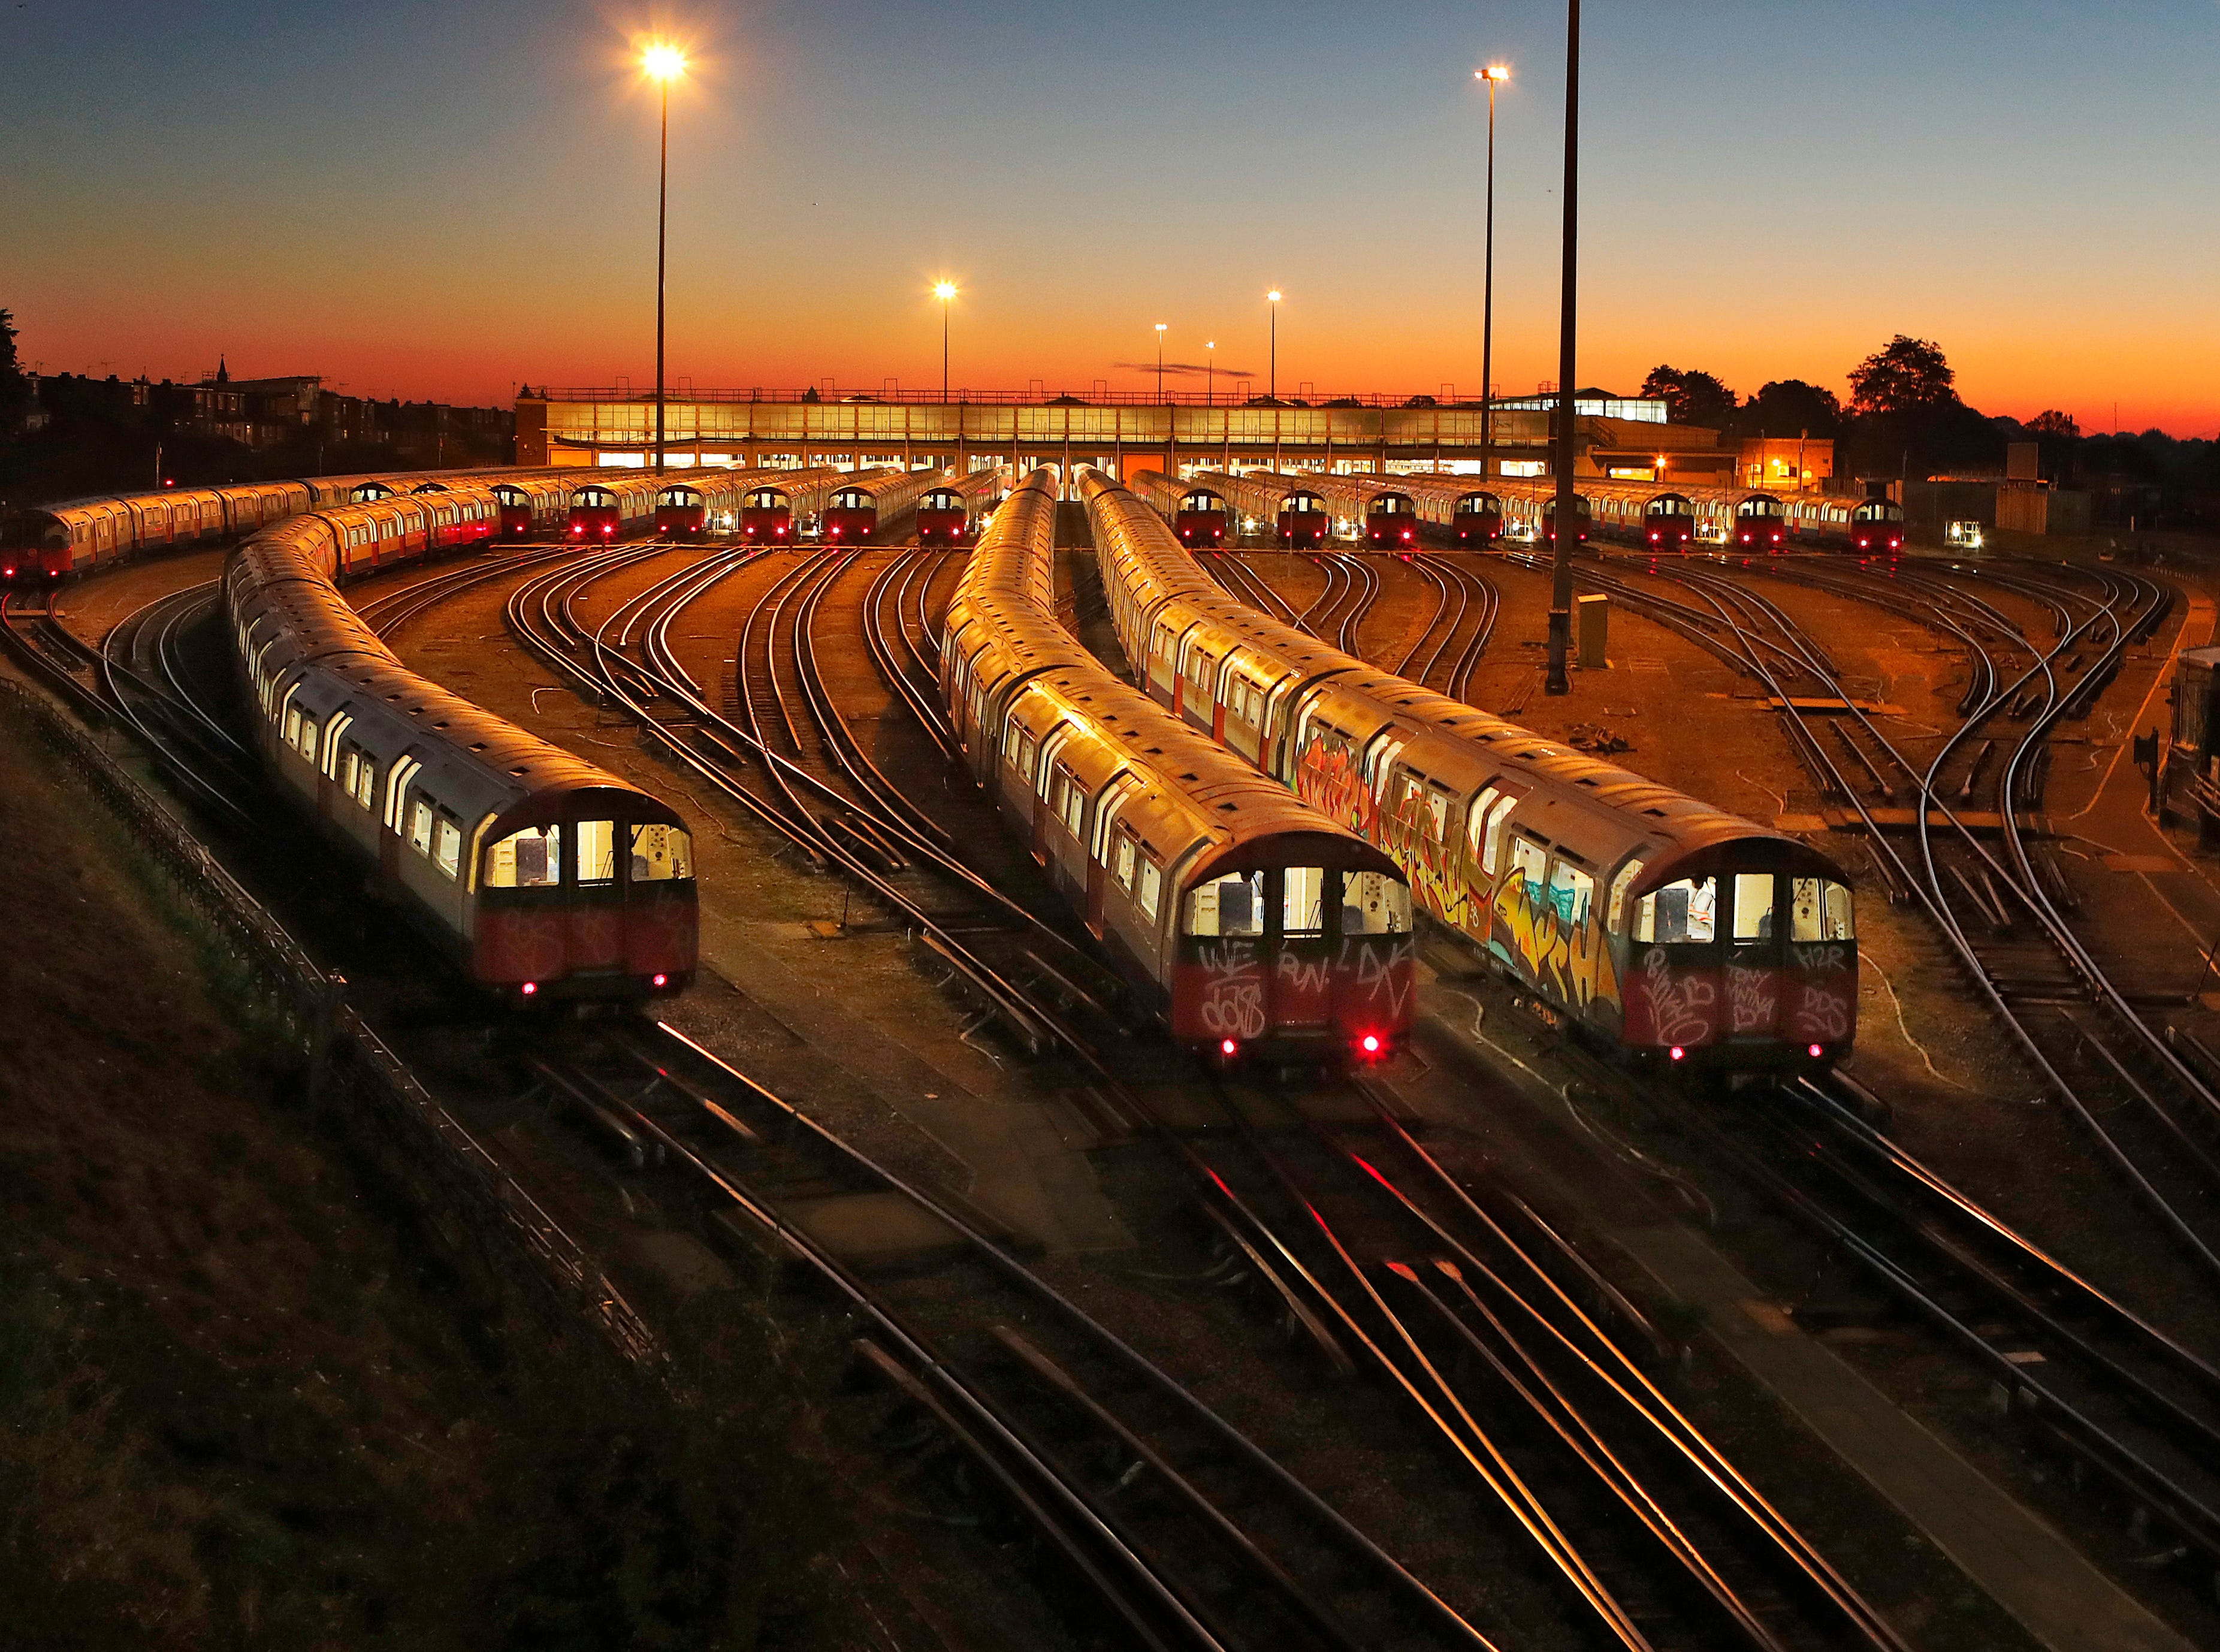 Piccadilly Line underground trains are parked at a depot at Boston Manor station in London, at sunrise on Thursday, Sept. 27, 2018. Tens of thousands of commuters face misery during their journeys Thursday as the Piccadilly Line, part of the London Underground network, began the 48 hour strike on Wednesday afternoon.